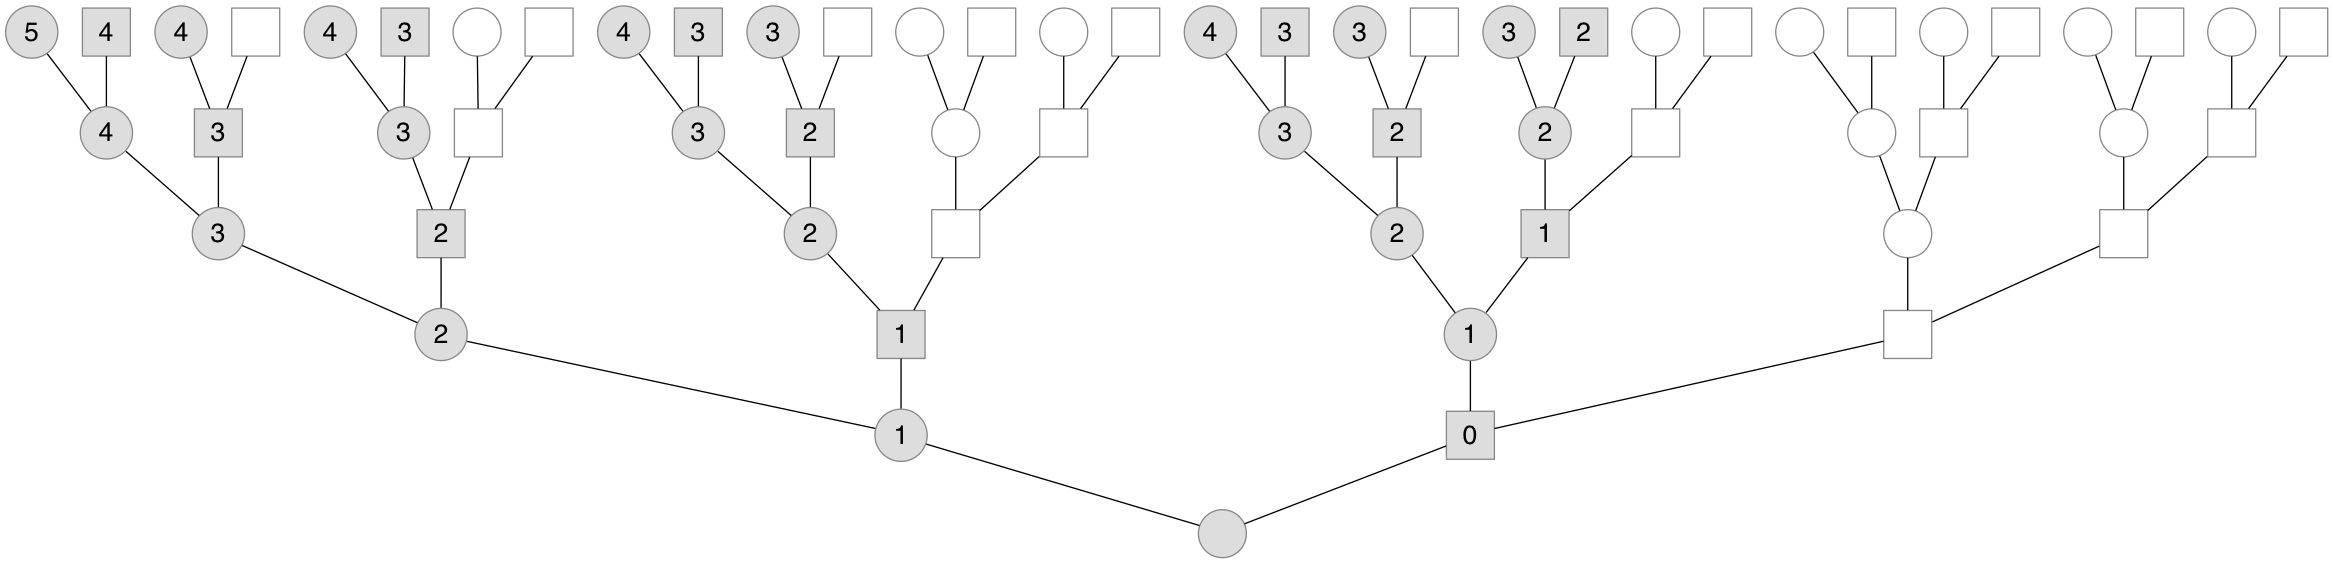 An X genealogy going back five generations, with females drawn as circles and males as squares. Shaded individuals are X ancestors, while unshaded individuals are not X ancestors. The numbers indicate the number of recombinational meioses to that ancestor.